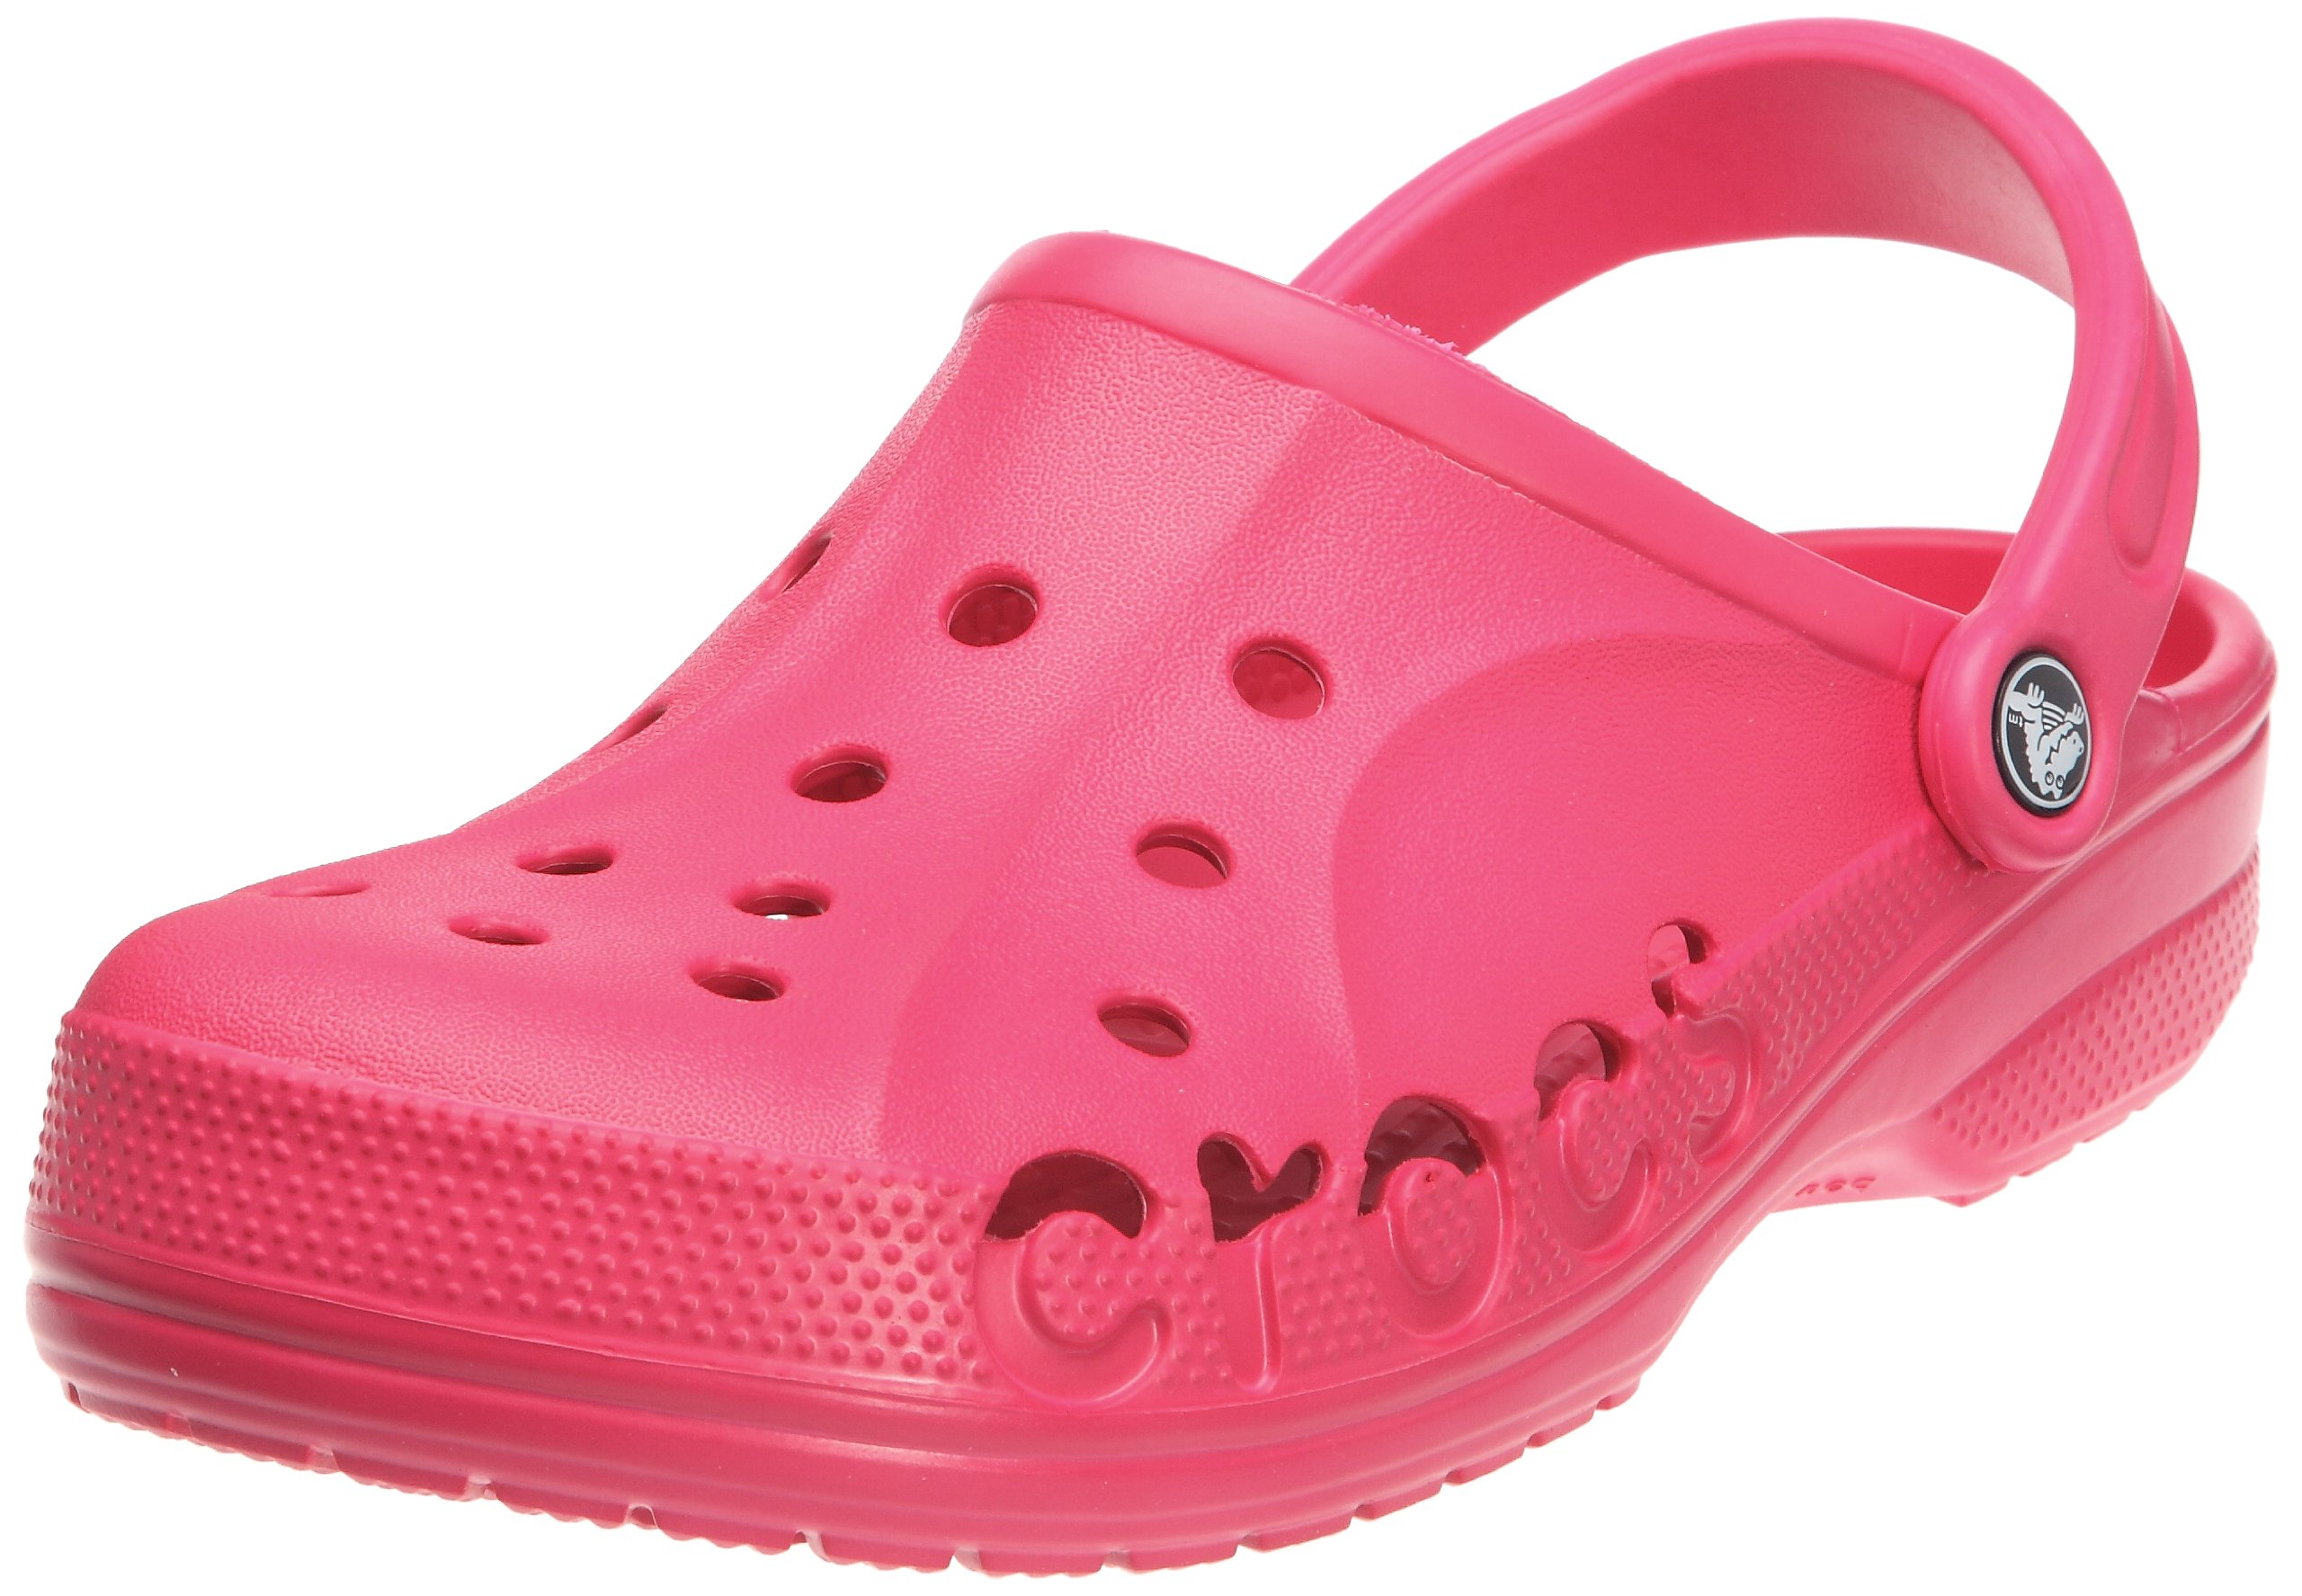 crocs Unisex Baya Clog, Raspberry, 4 M (D) US Men / 6 M (B) US Women